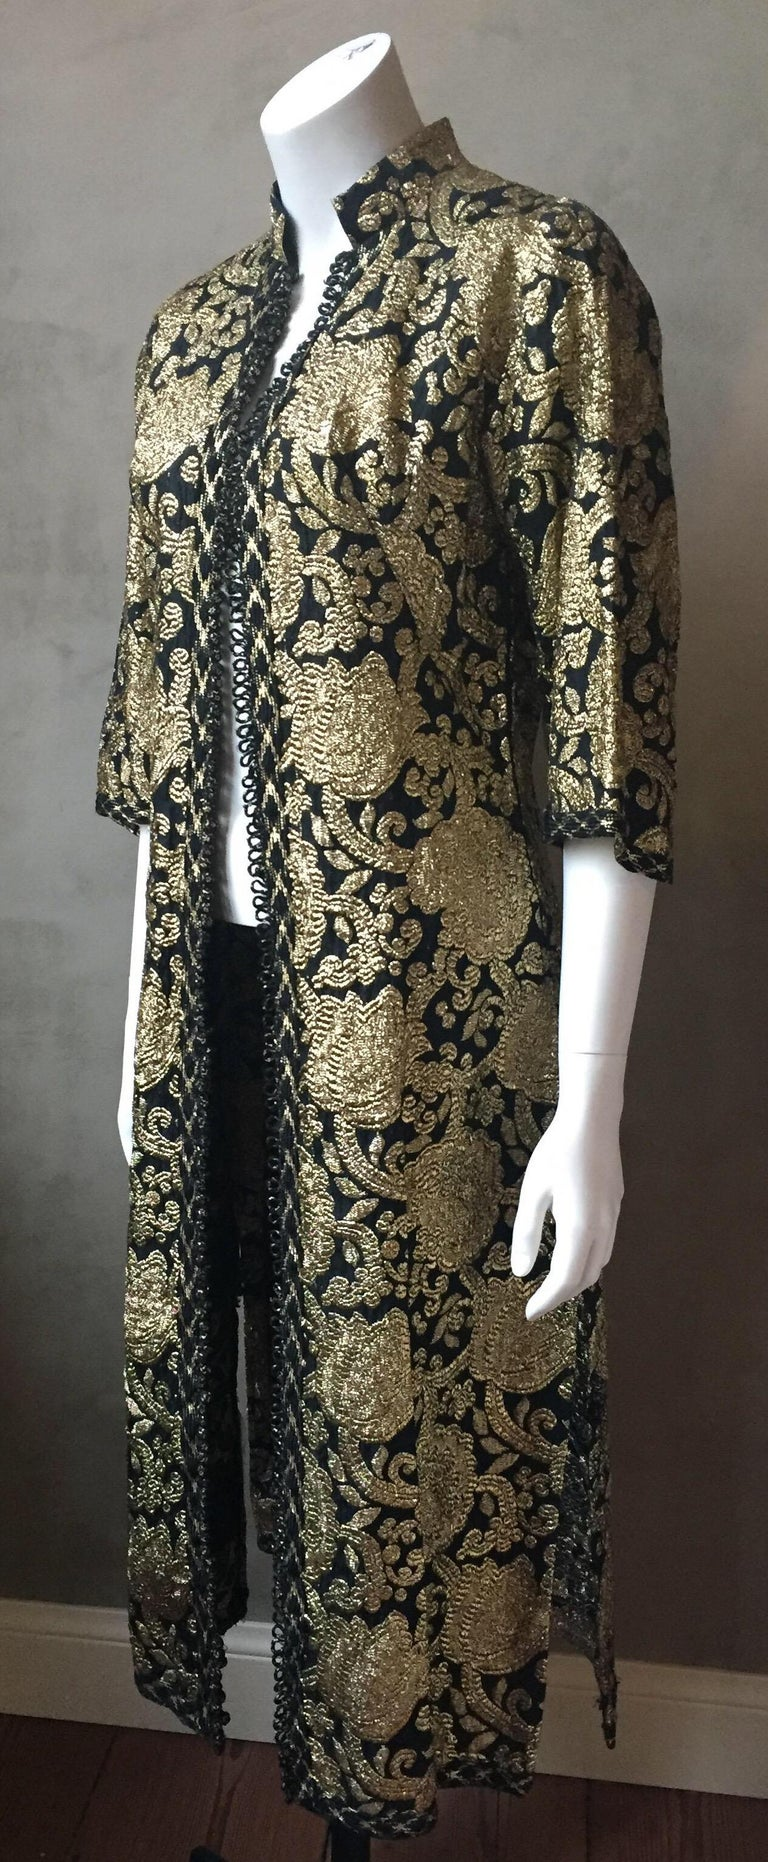 A vintage Turkish style gold and black brocade dress or evening jacket. Tiny knot buttons all the way down the front and a side zipper allow the dress to be worn completely closed when worn as a dress, or button the top half and leave from waist